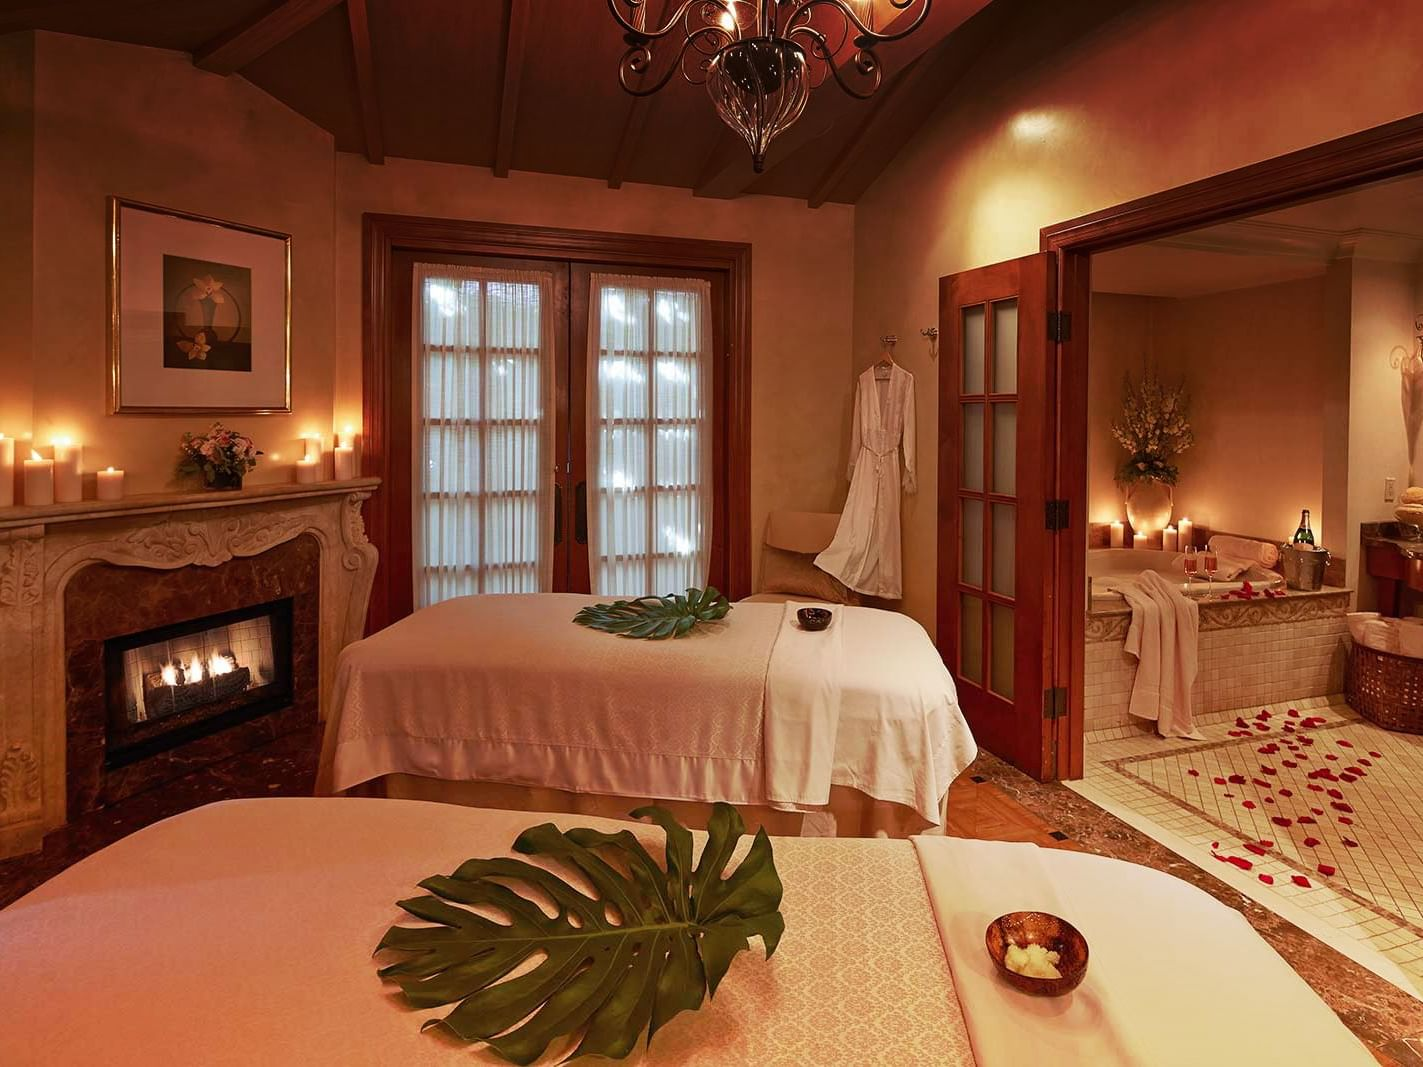 Two massage tables at the Spa in Kelly's Spa & Boutique